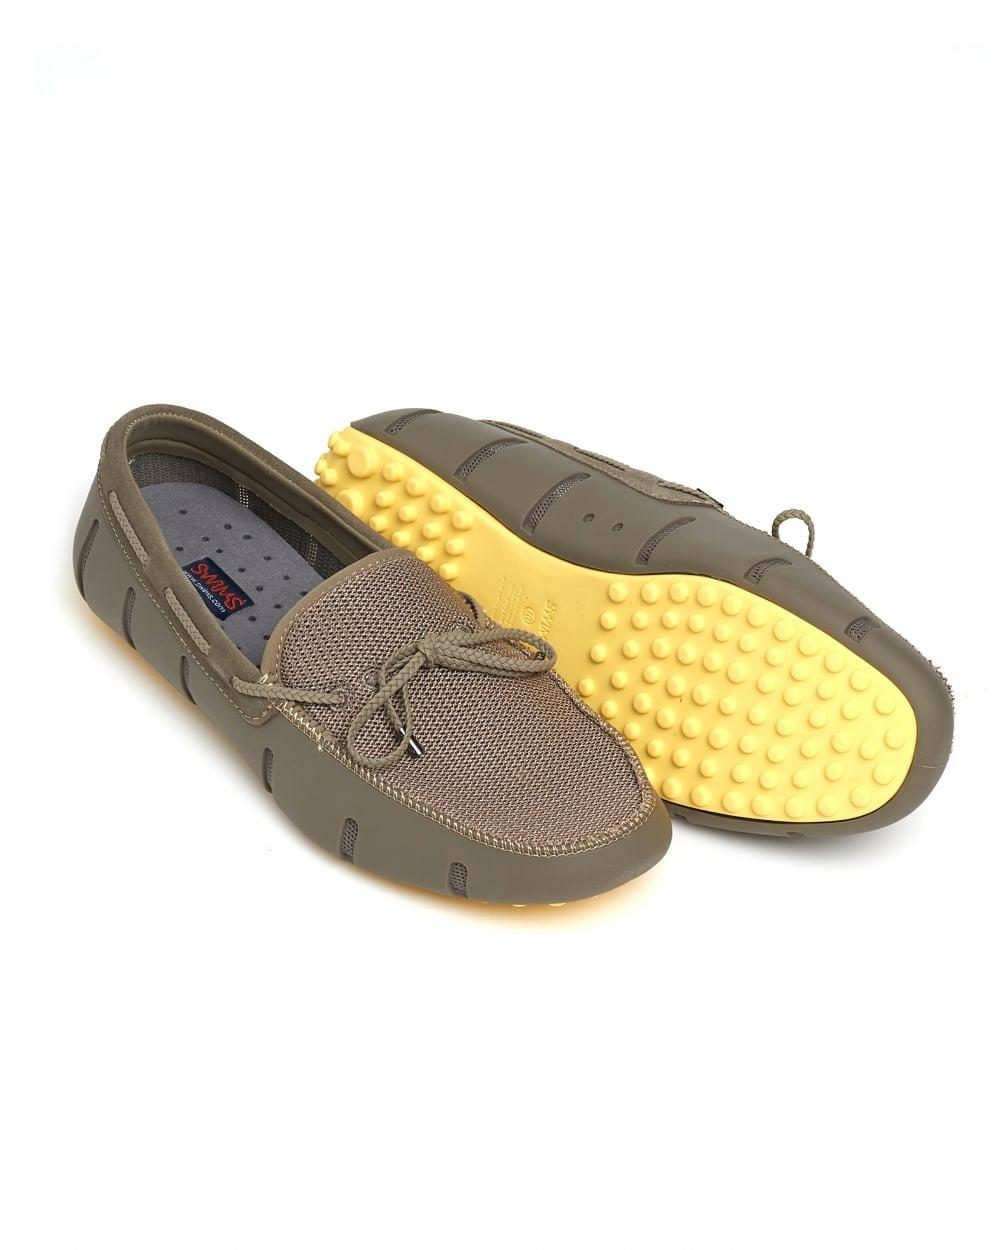 c808c8e6e0cb0 Swims Braided Lace Lux Loafer, Khaki Faded Lemon Driver Shoes in ...